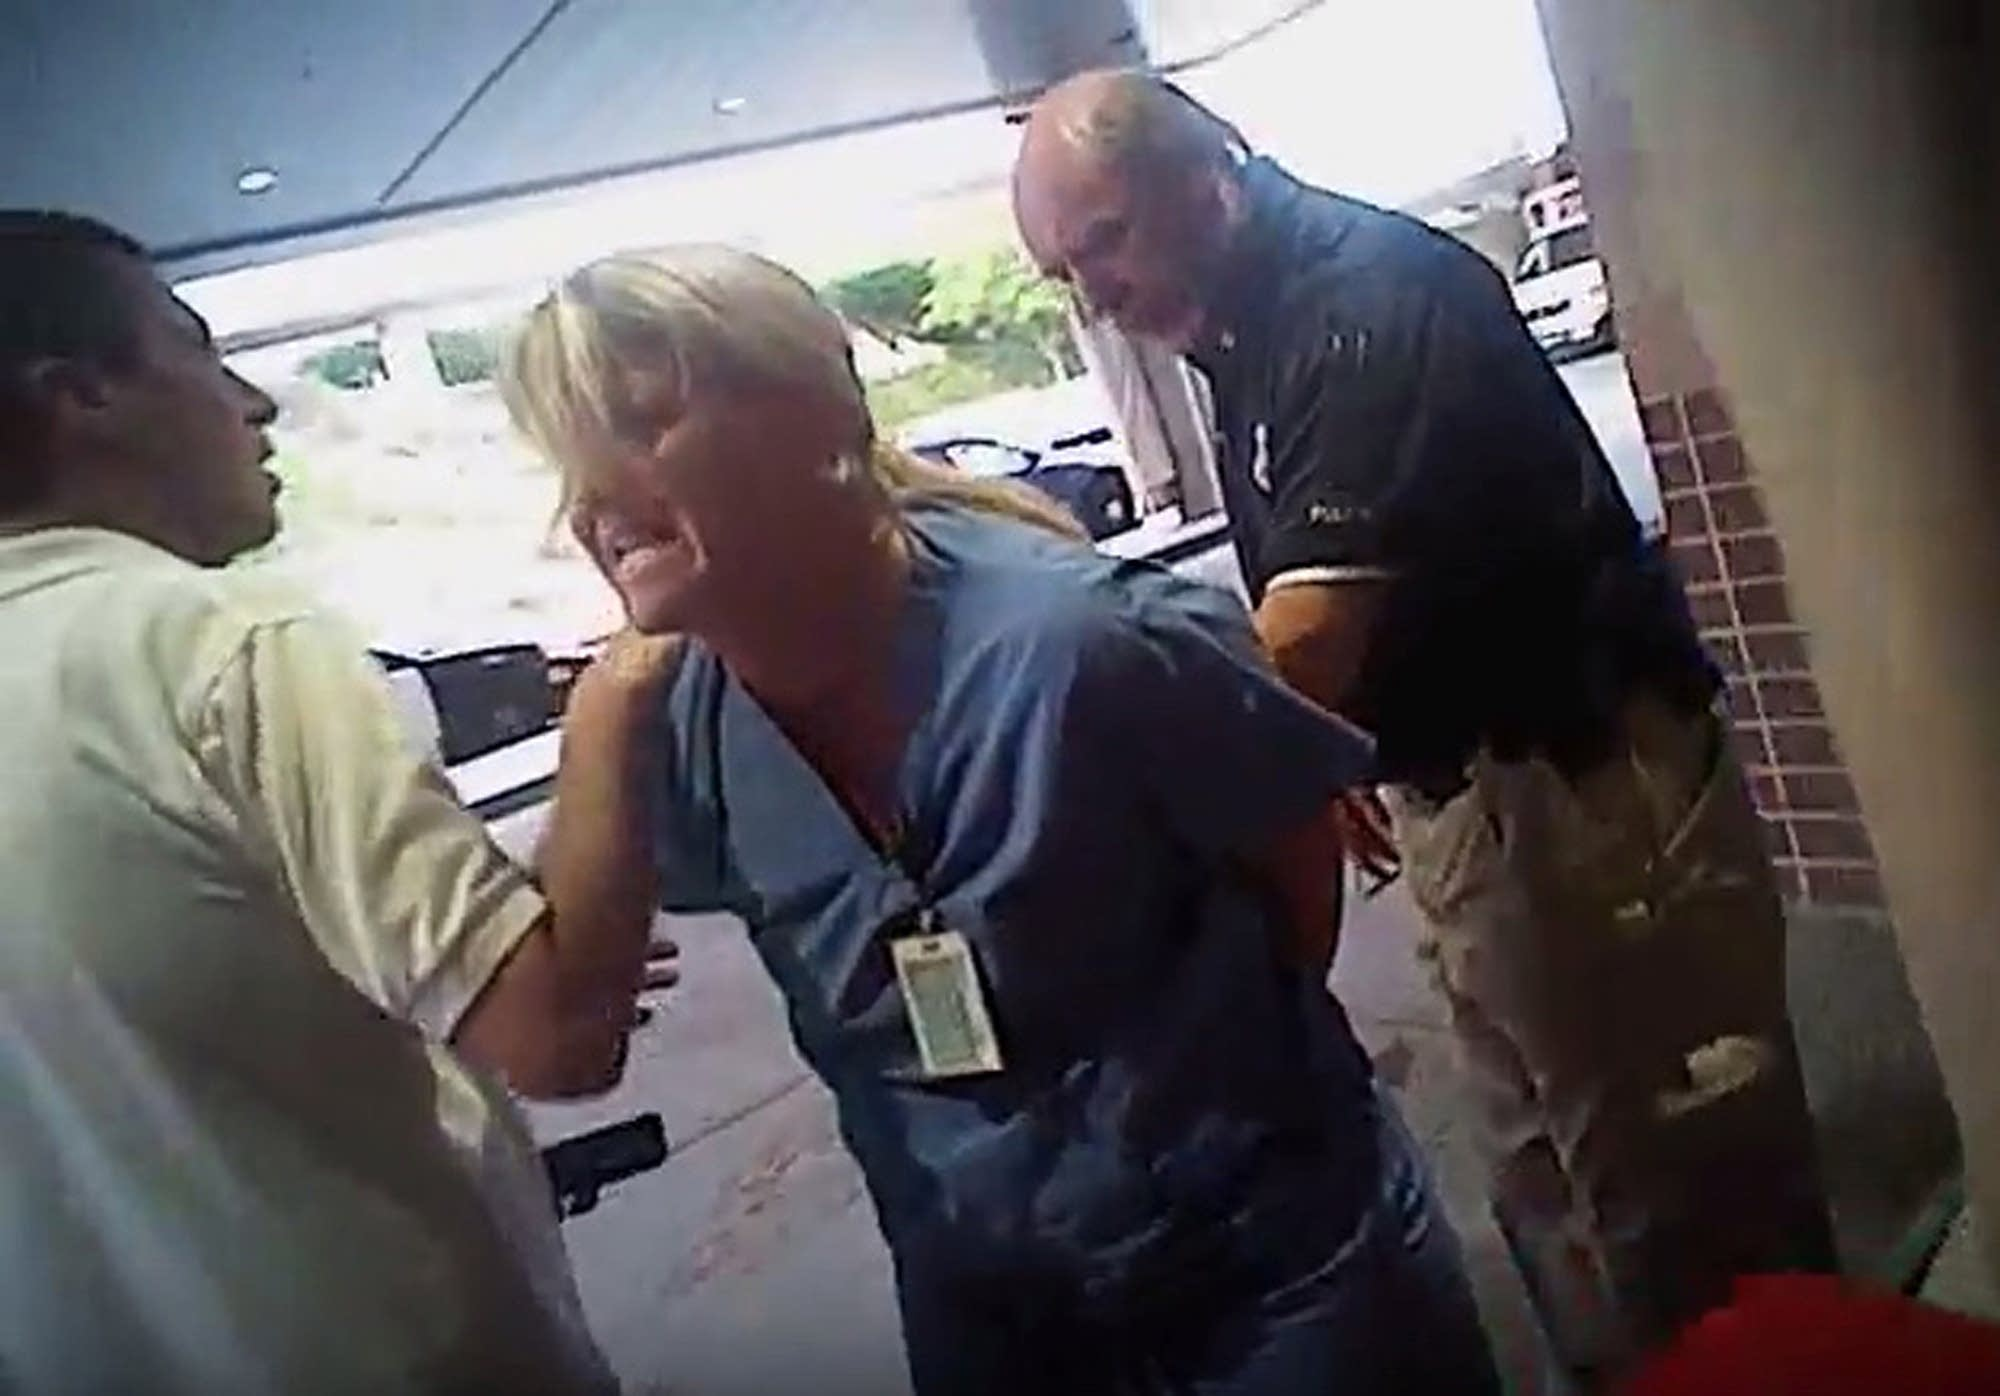 Officer handcuffs nurse for refusing blood test on patient